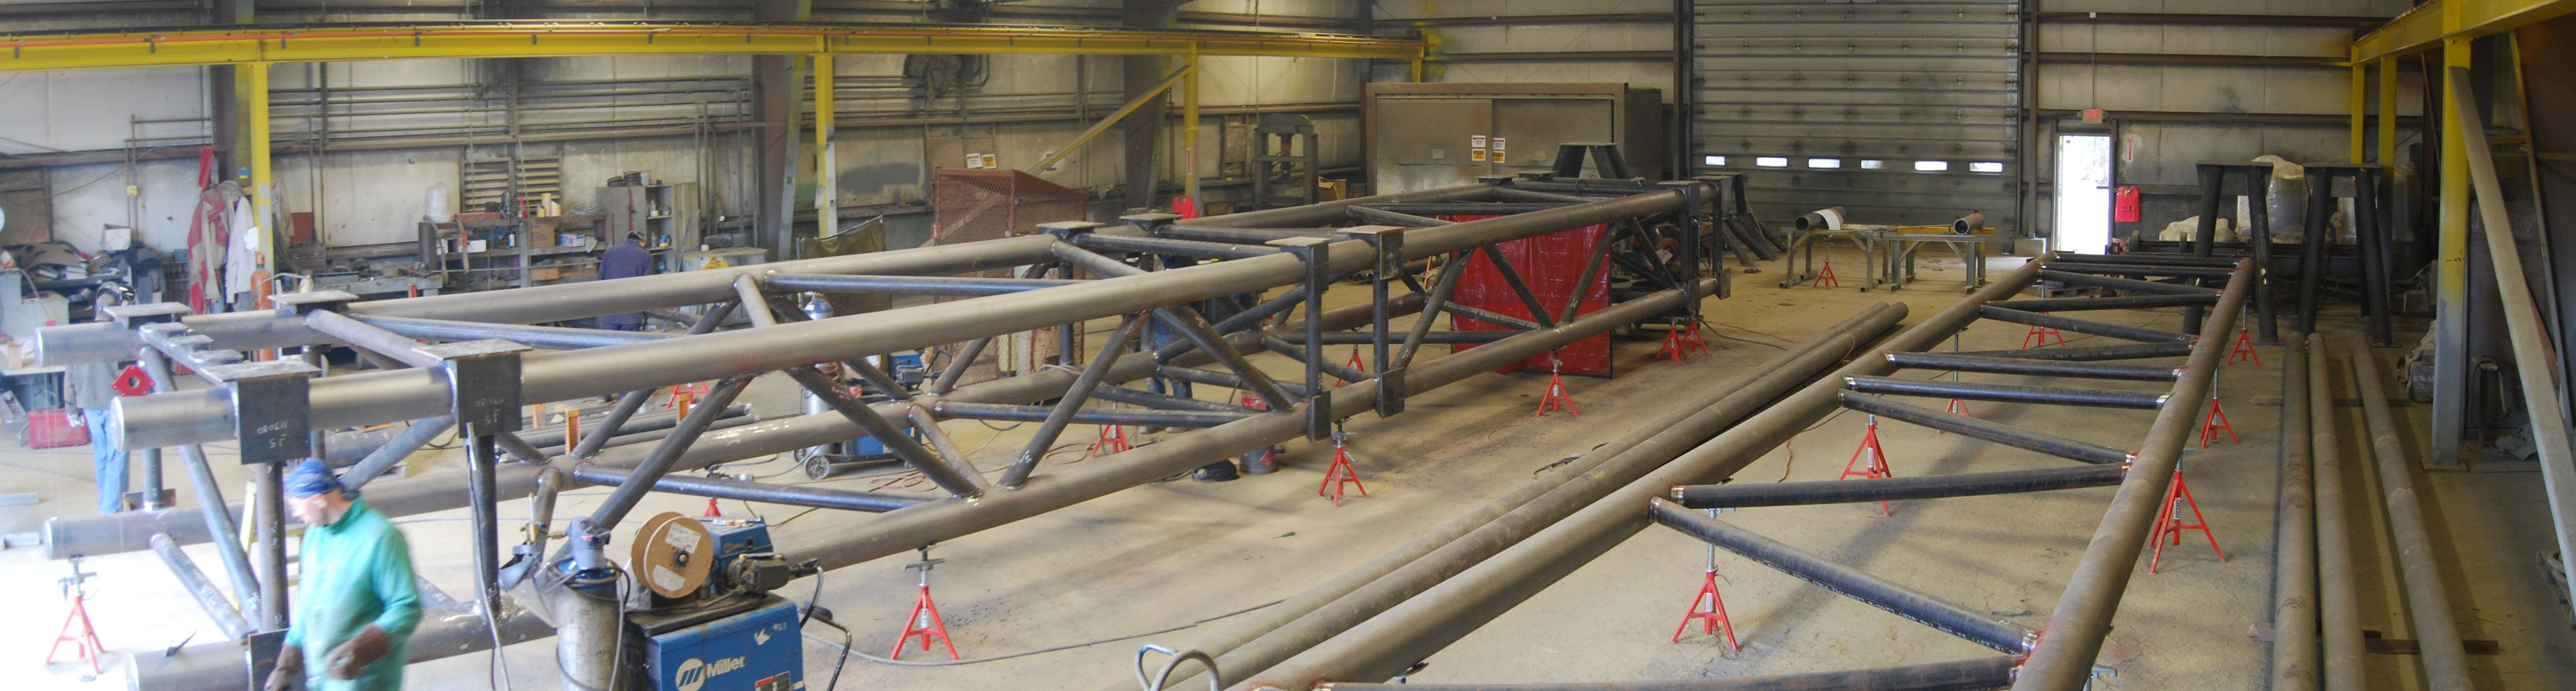 ORPC Chassis Fabrication